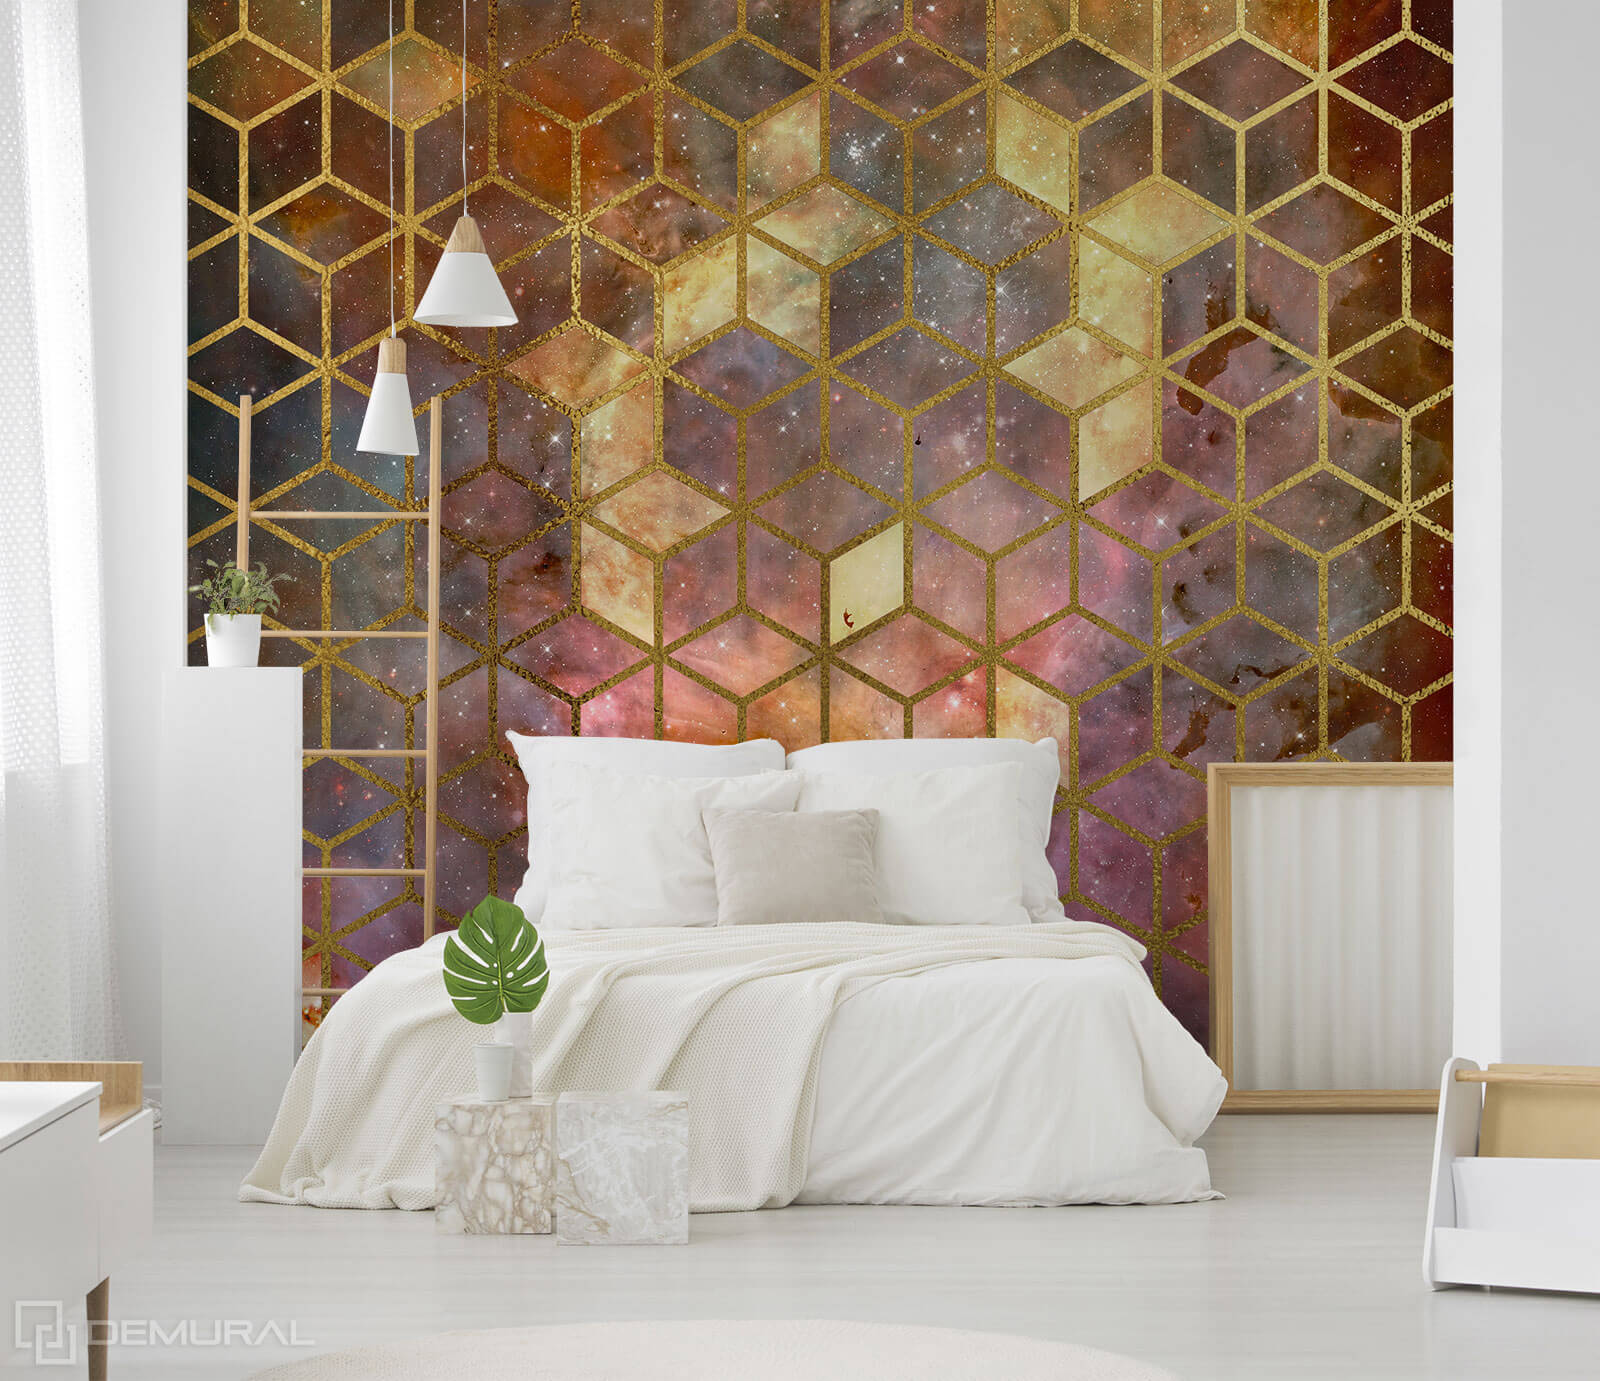 Photo wallpaper Cobic cosmos - Geometric photo wallpaper - Demural